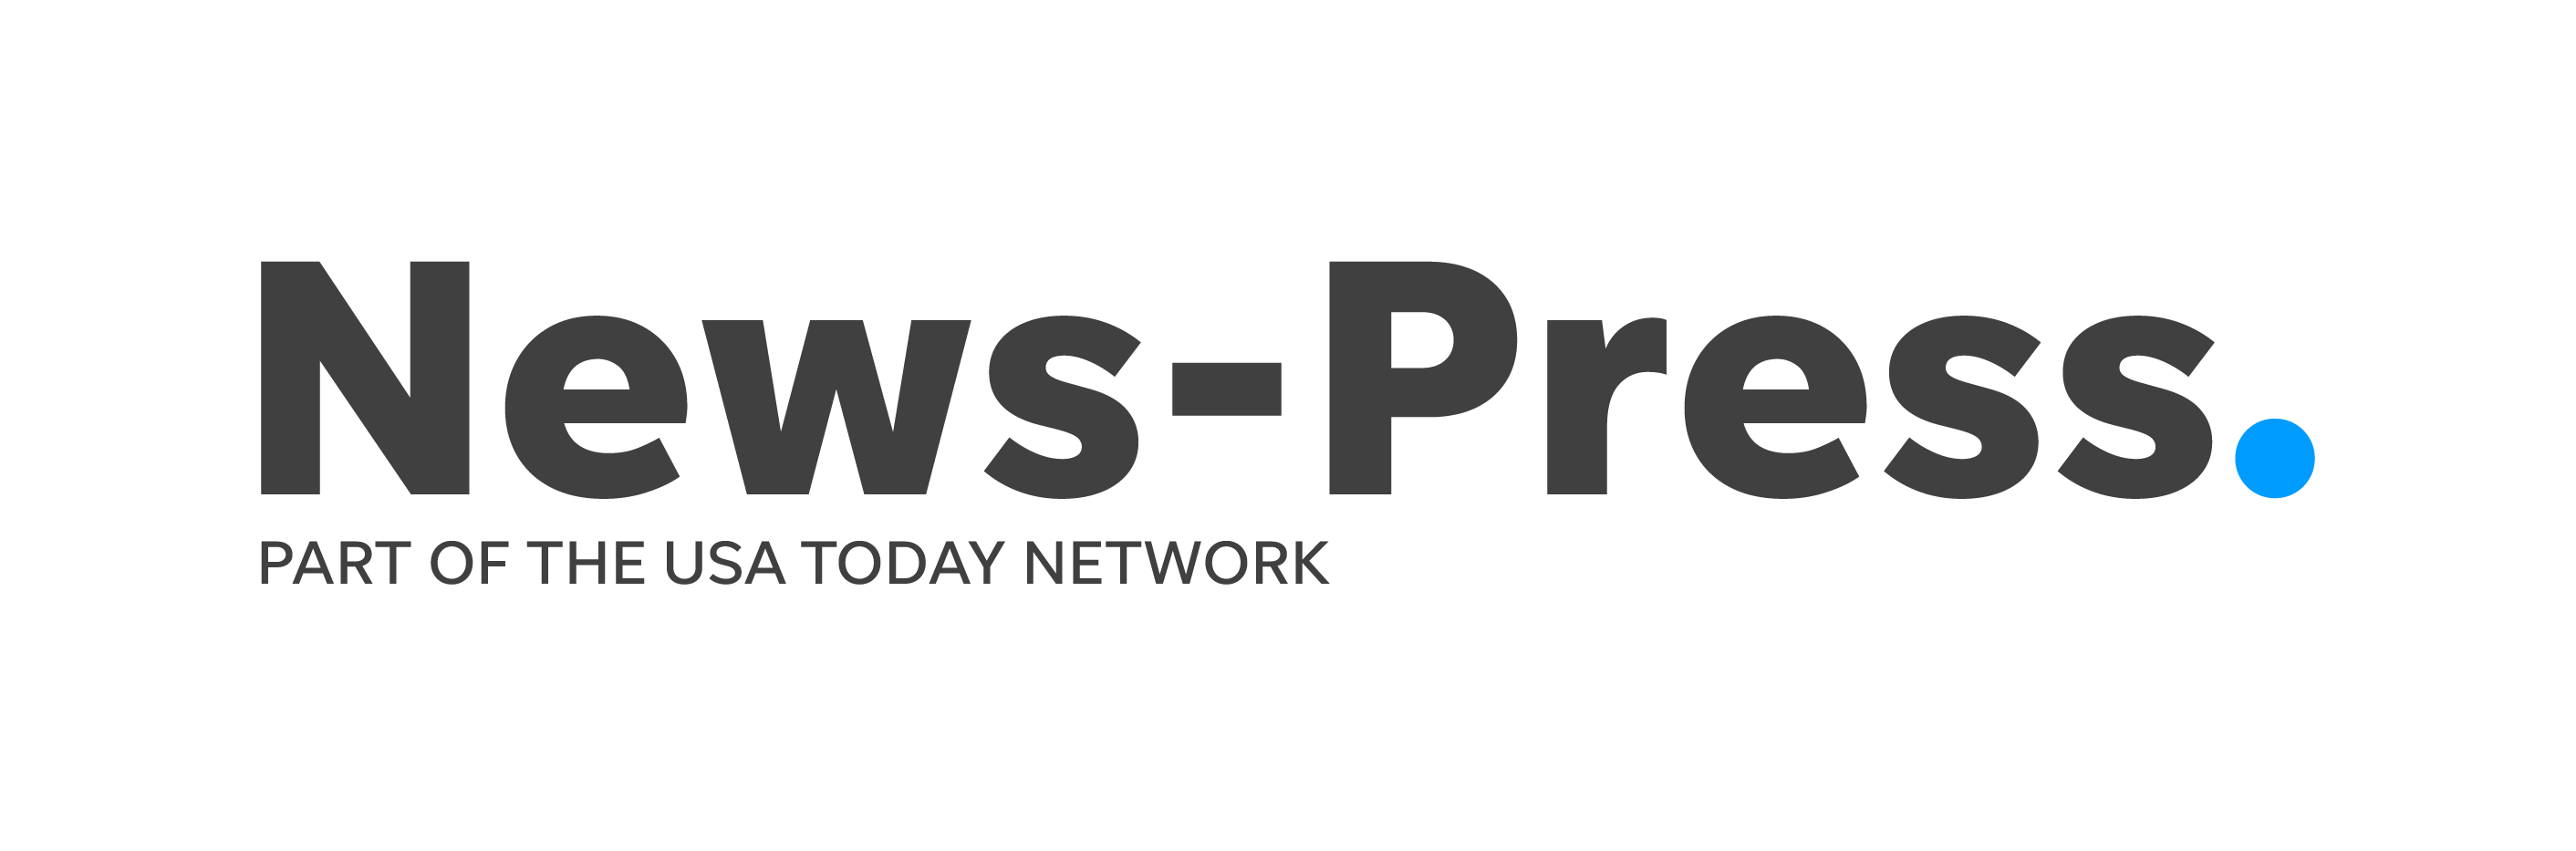 2017 News Press Logo